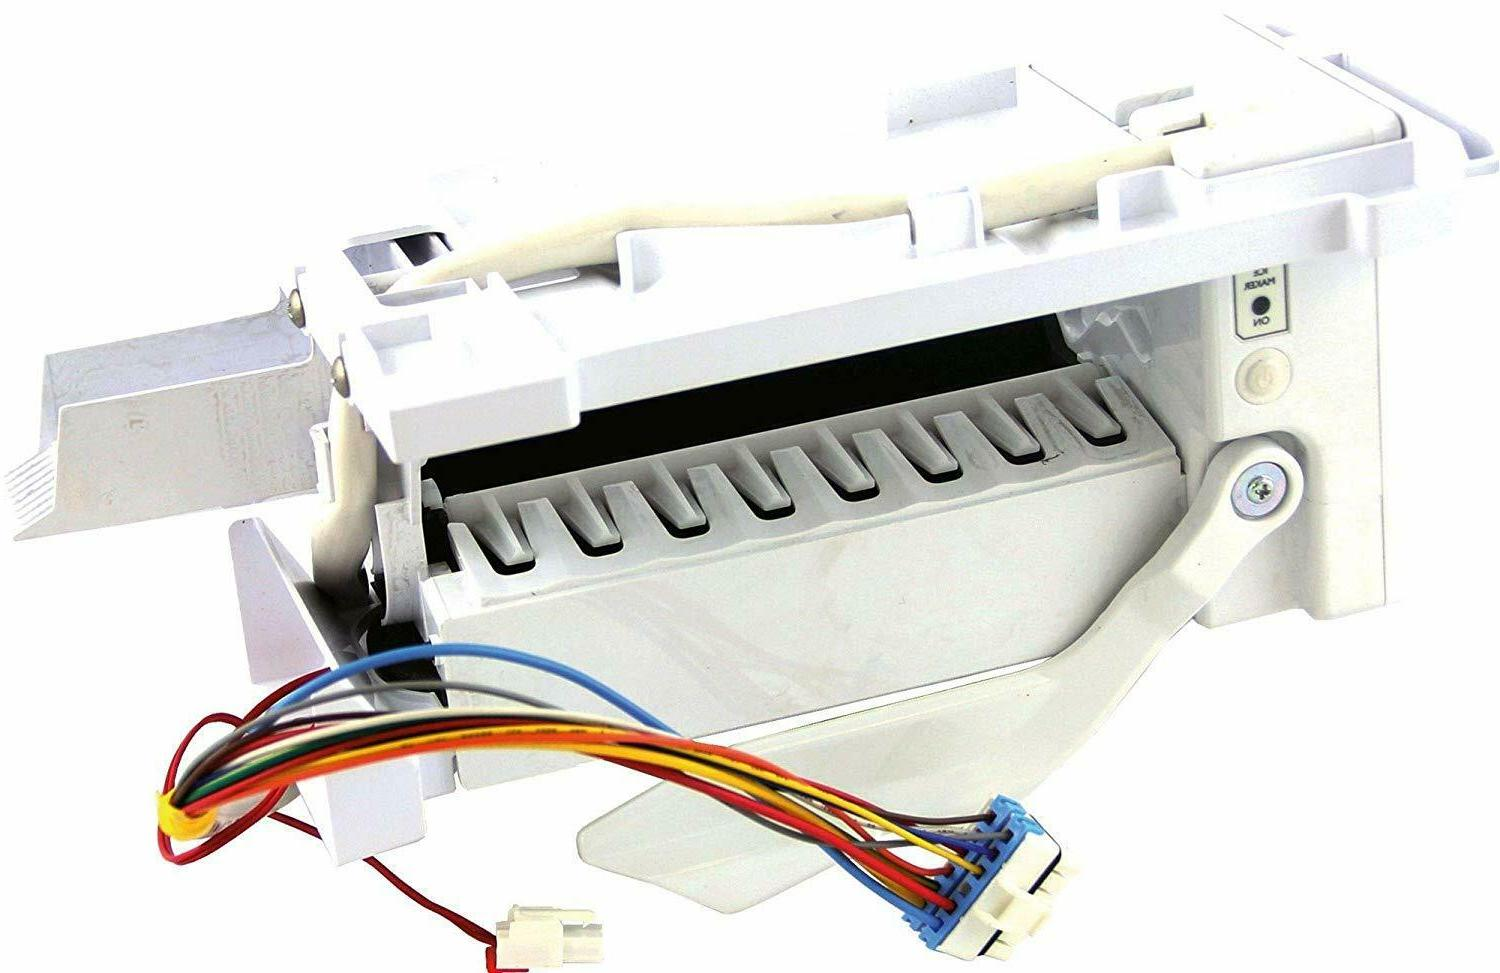 new ice maker assembly part number 658257